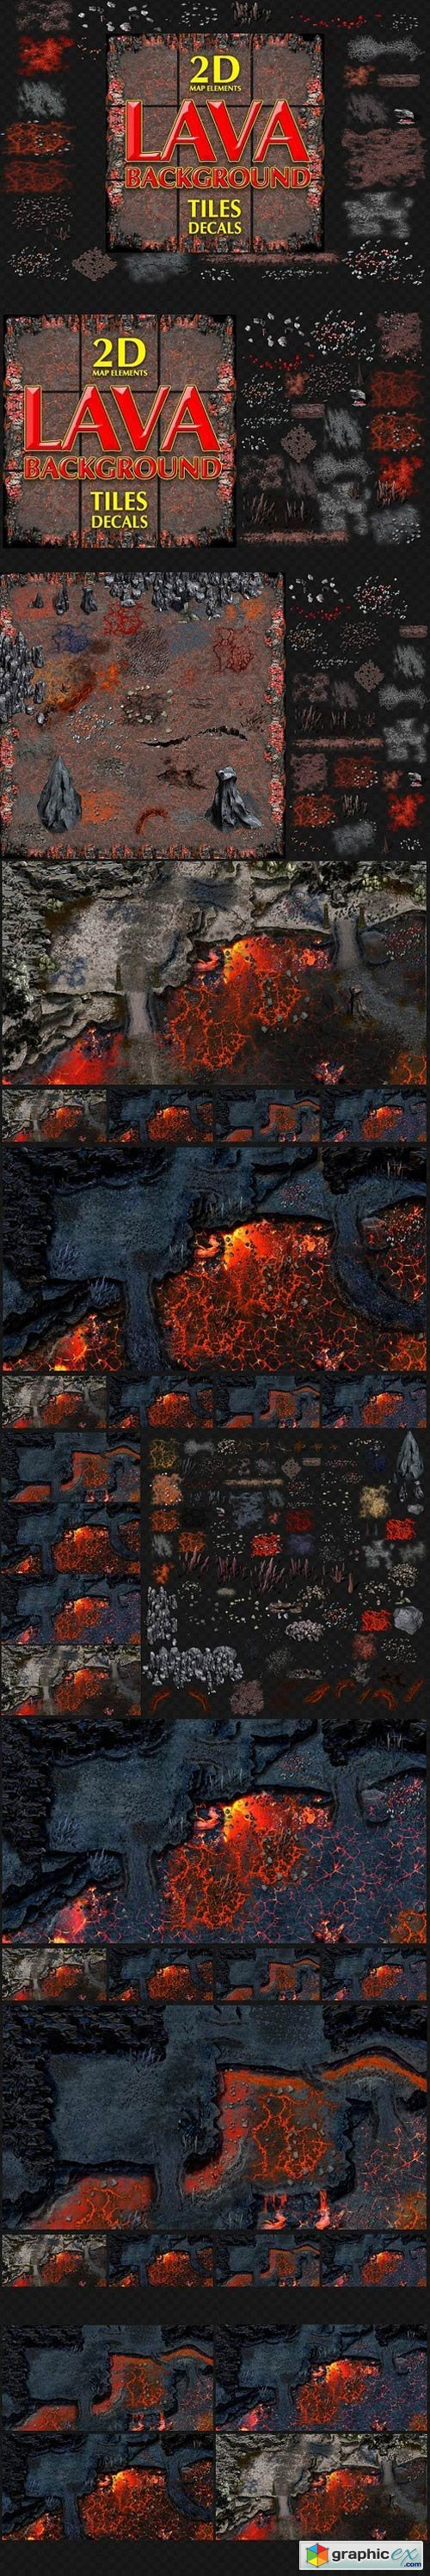 LAVA GAME BACKGROUND TILES AND DECAL